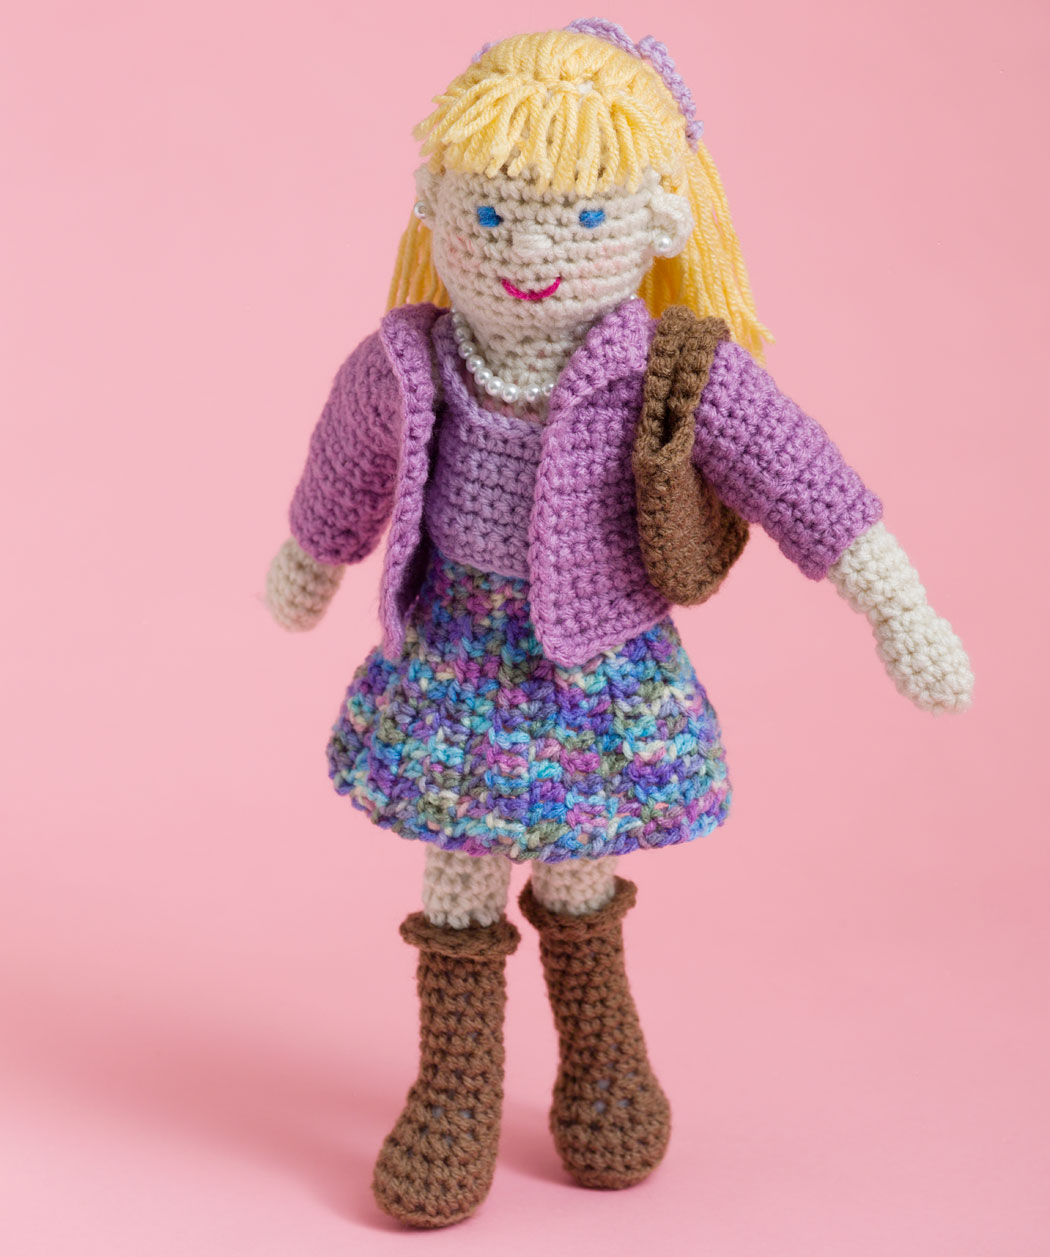 Amigurumi Human Doll Free Pattern : 2000 Free Amigurumi Patterns: August 2011